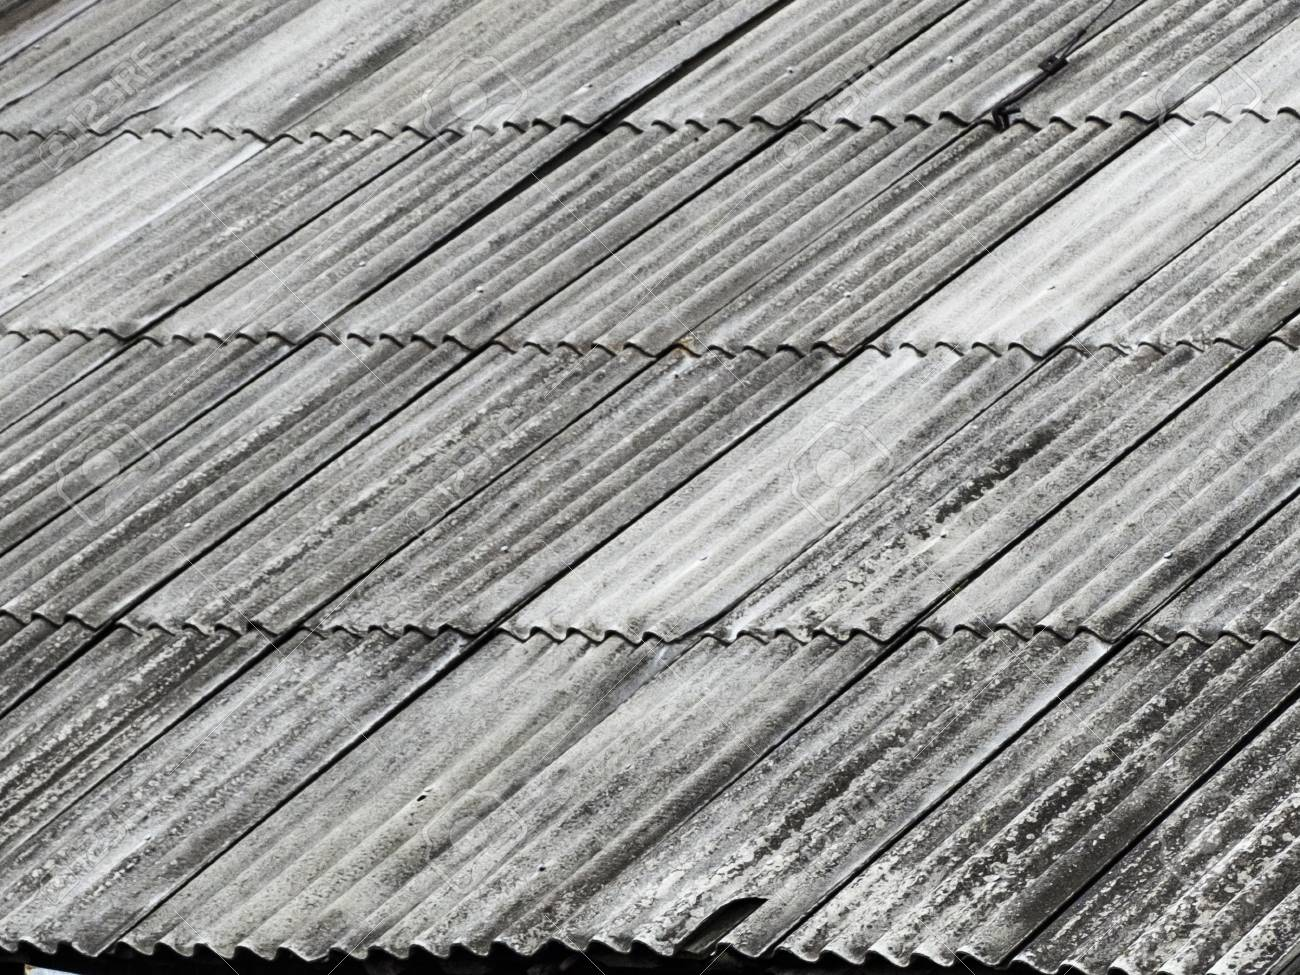 The Old Assbestos Roof Asbestos Cement Roofing Corrugated Sheets Stock Photo Picture And Royalty Free Image Image 102338216